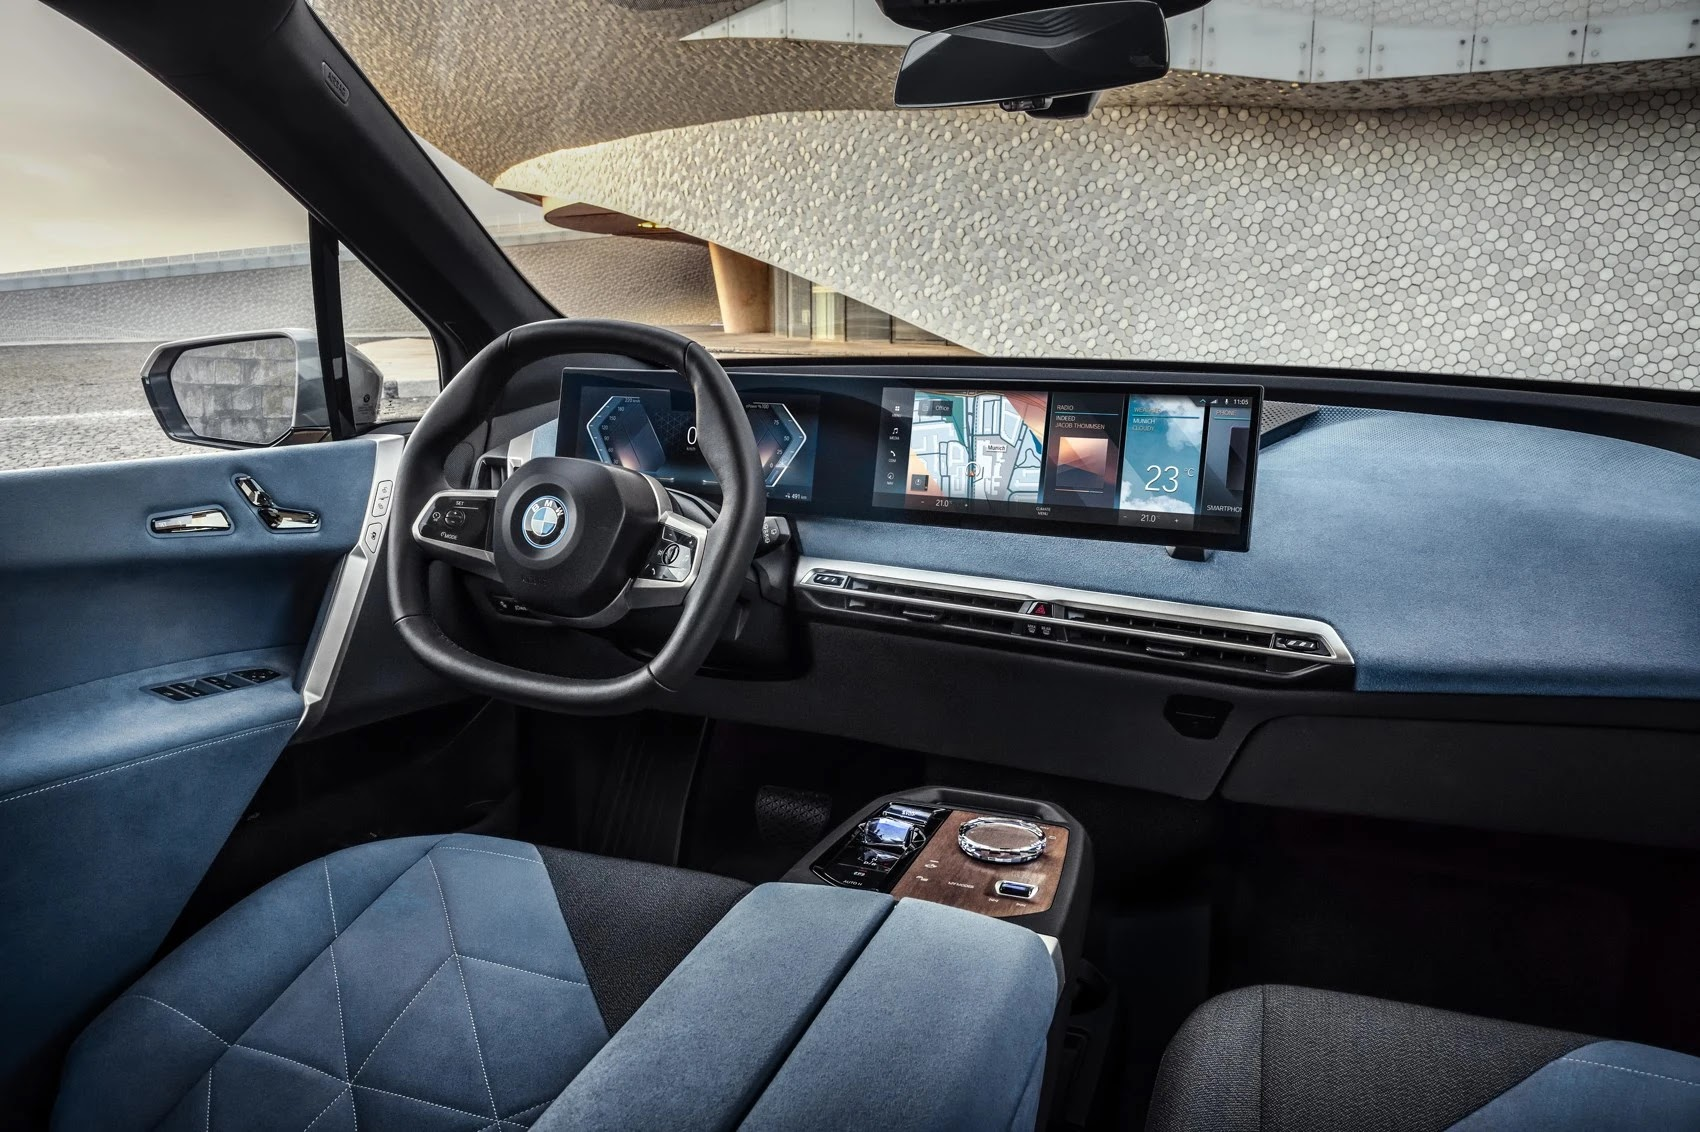 BMW iX is the first luxury car with 5G connectivity